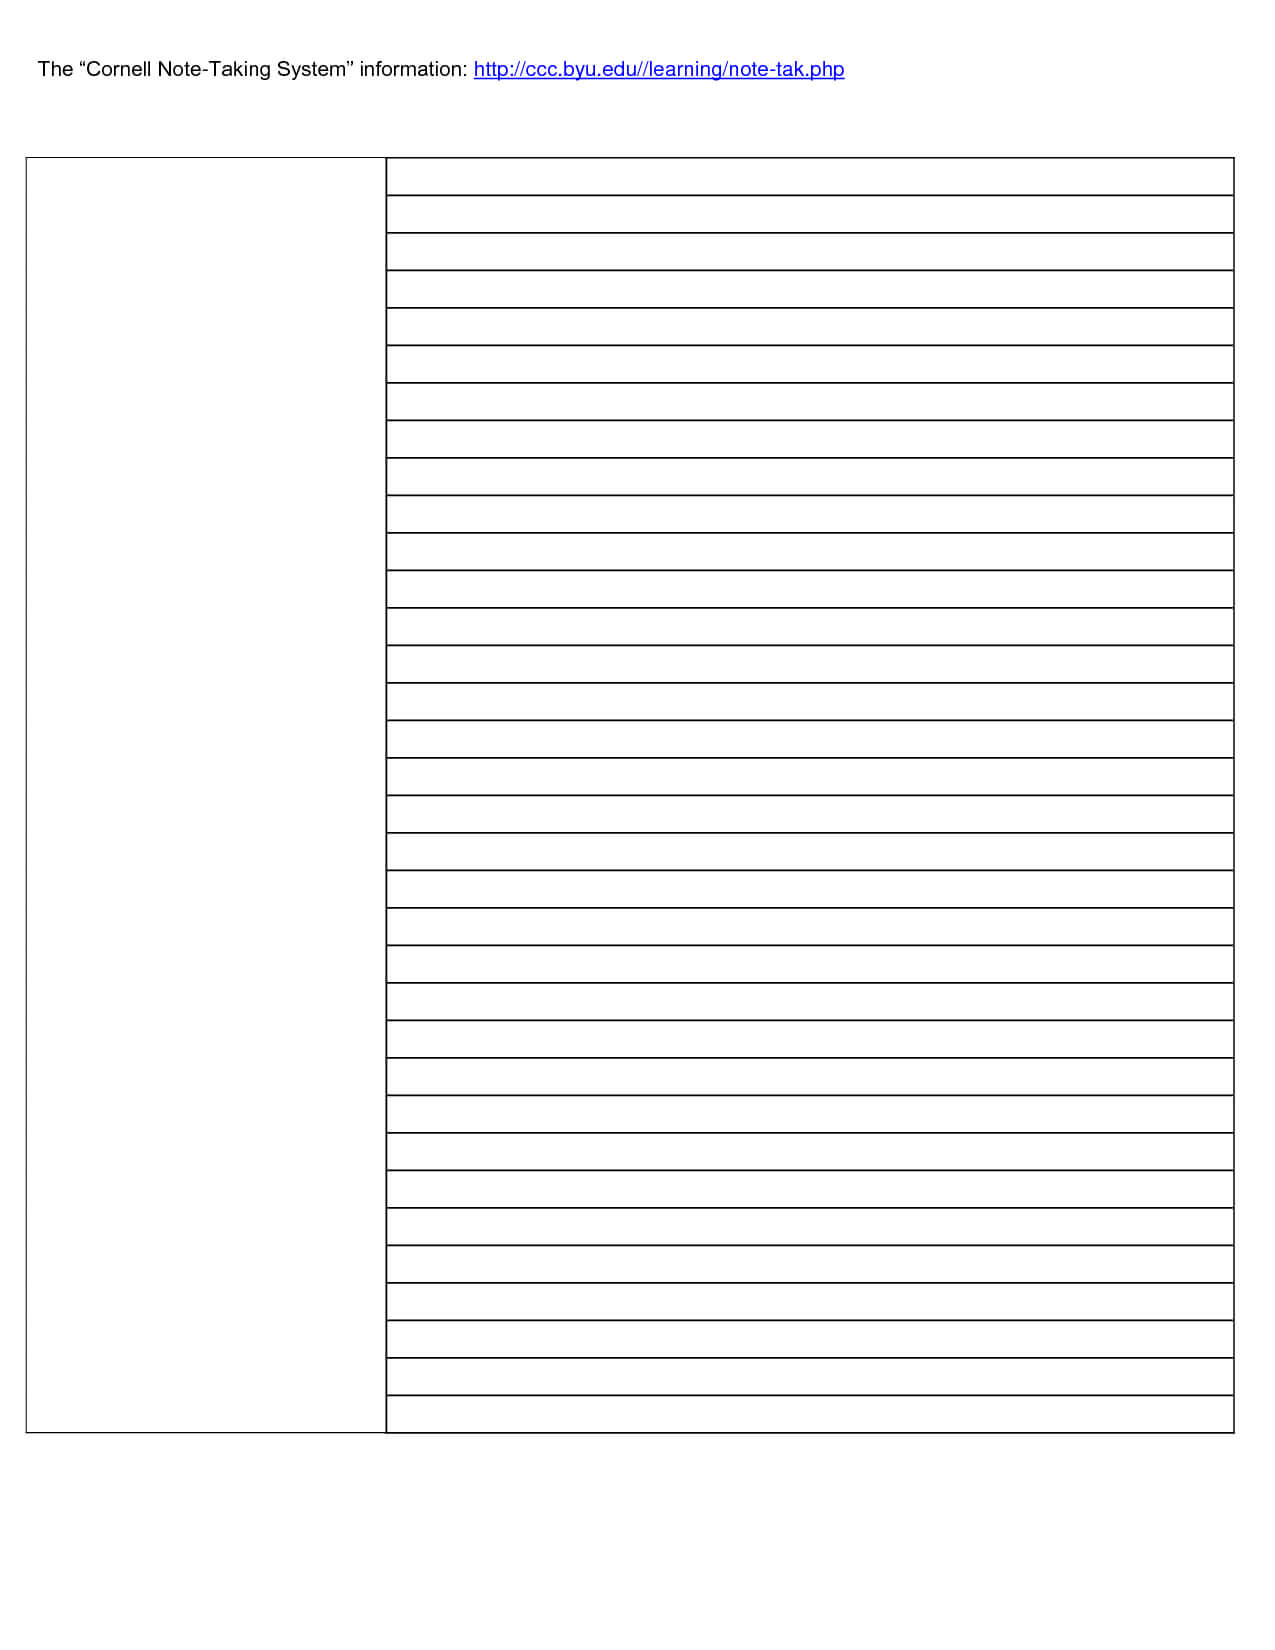 001 Cornell Note Taking Template Word Research Paper pertaining to Cornell Note Template Word